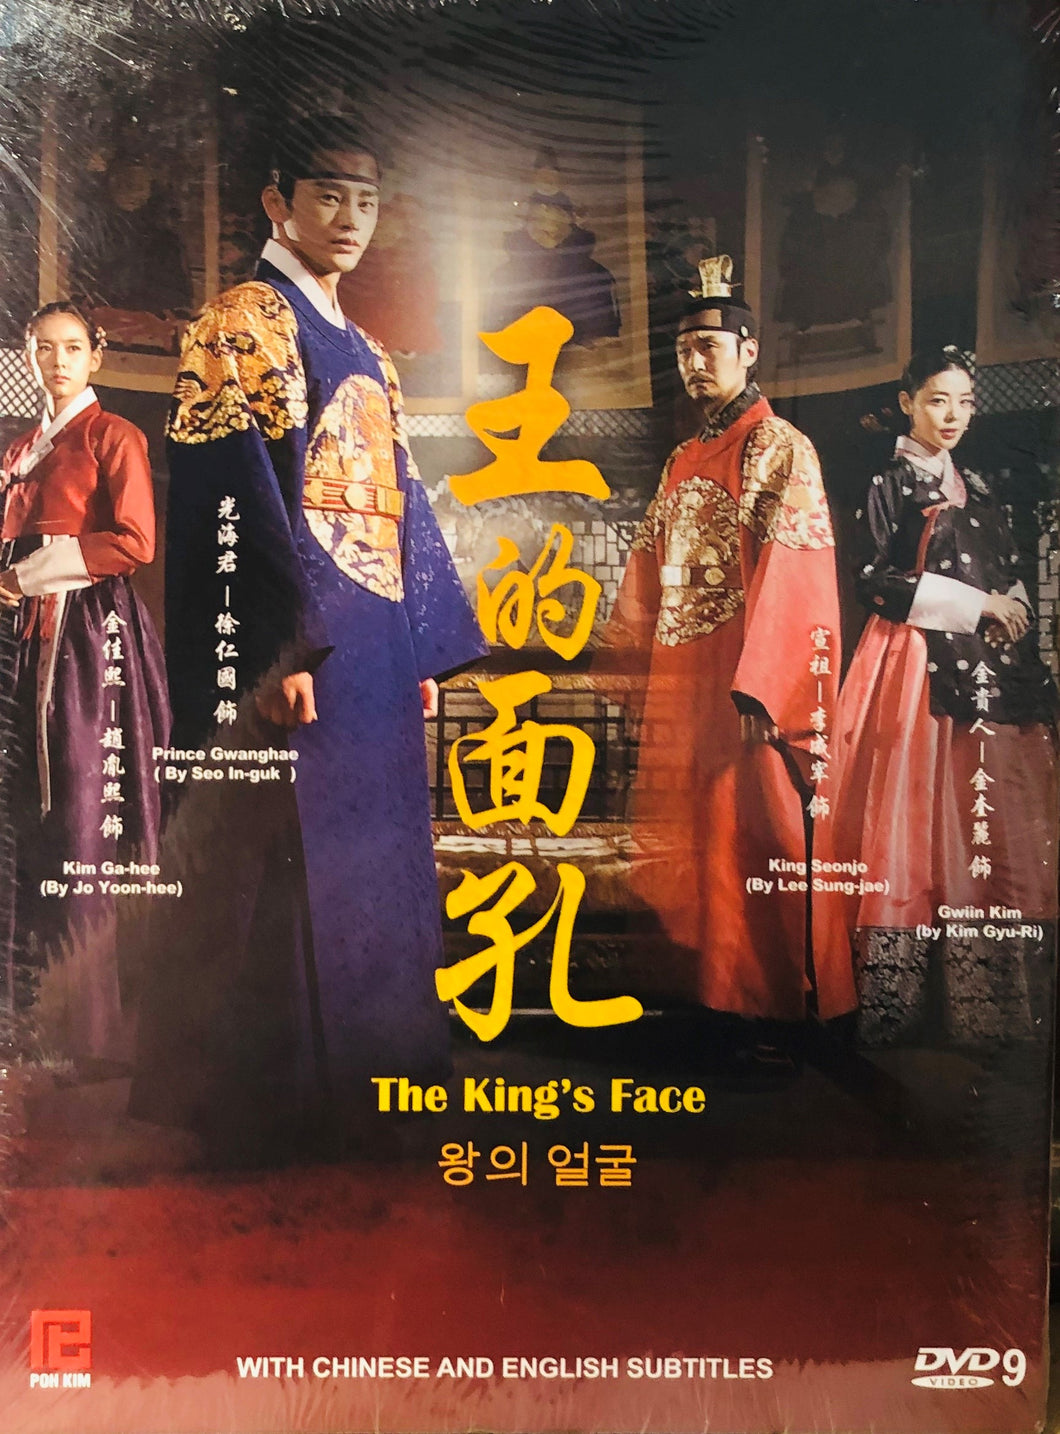 THE KING'S FACE 2012 DVD (KOREAN DRAMA) 1-23 EPISODES WITH ENGLISH SUBTITLES  (ALL REGION) 王的面孔